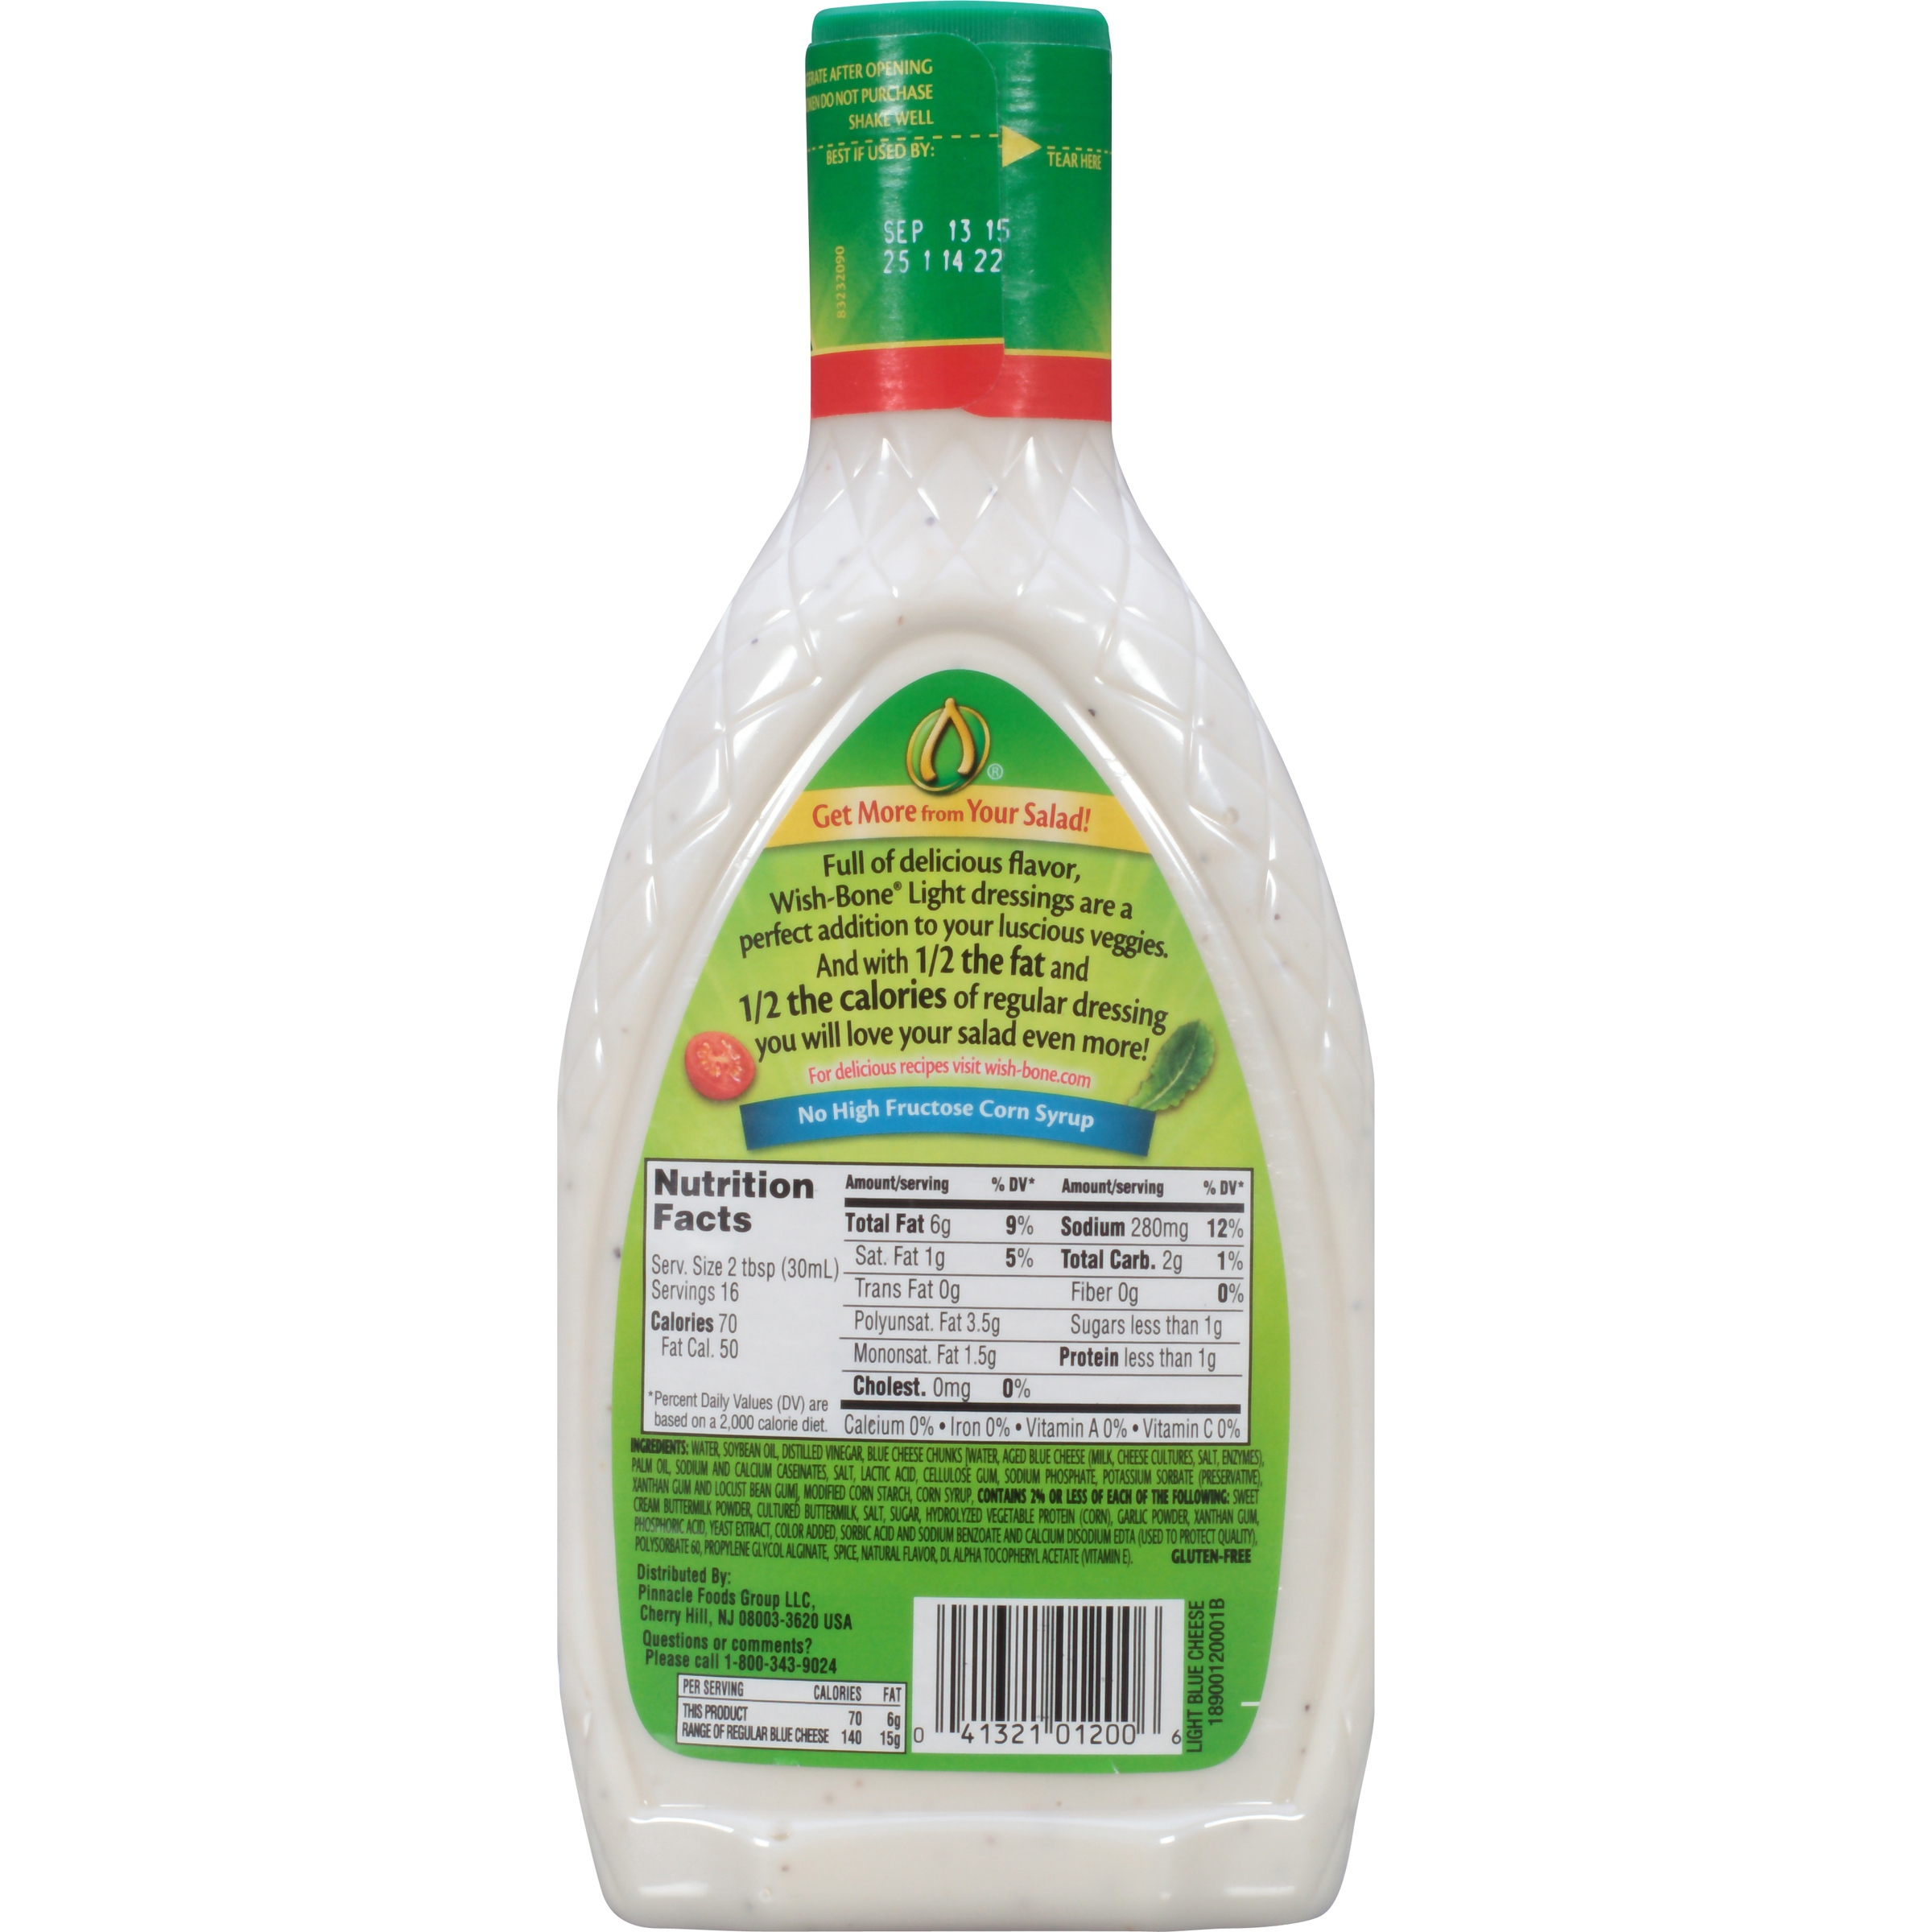 Sodium in blue cheese salad dressing